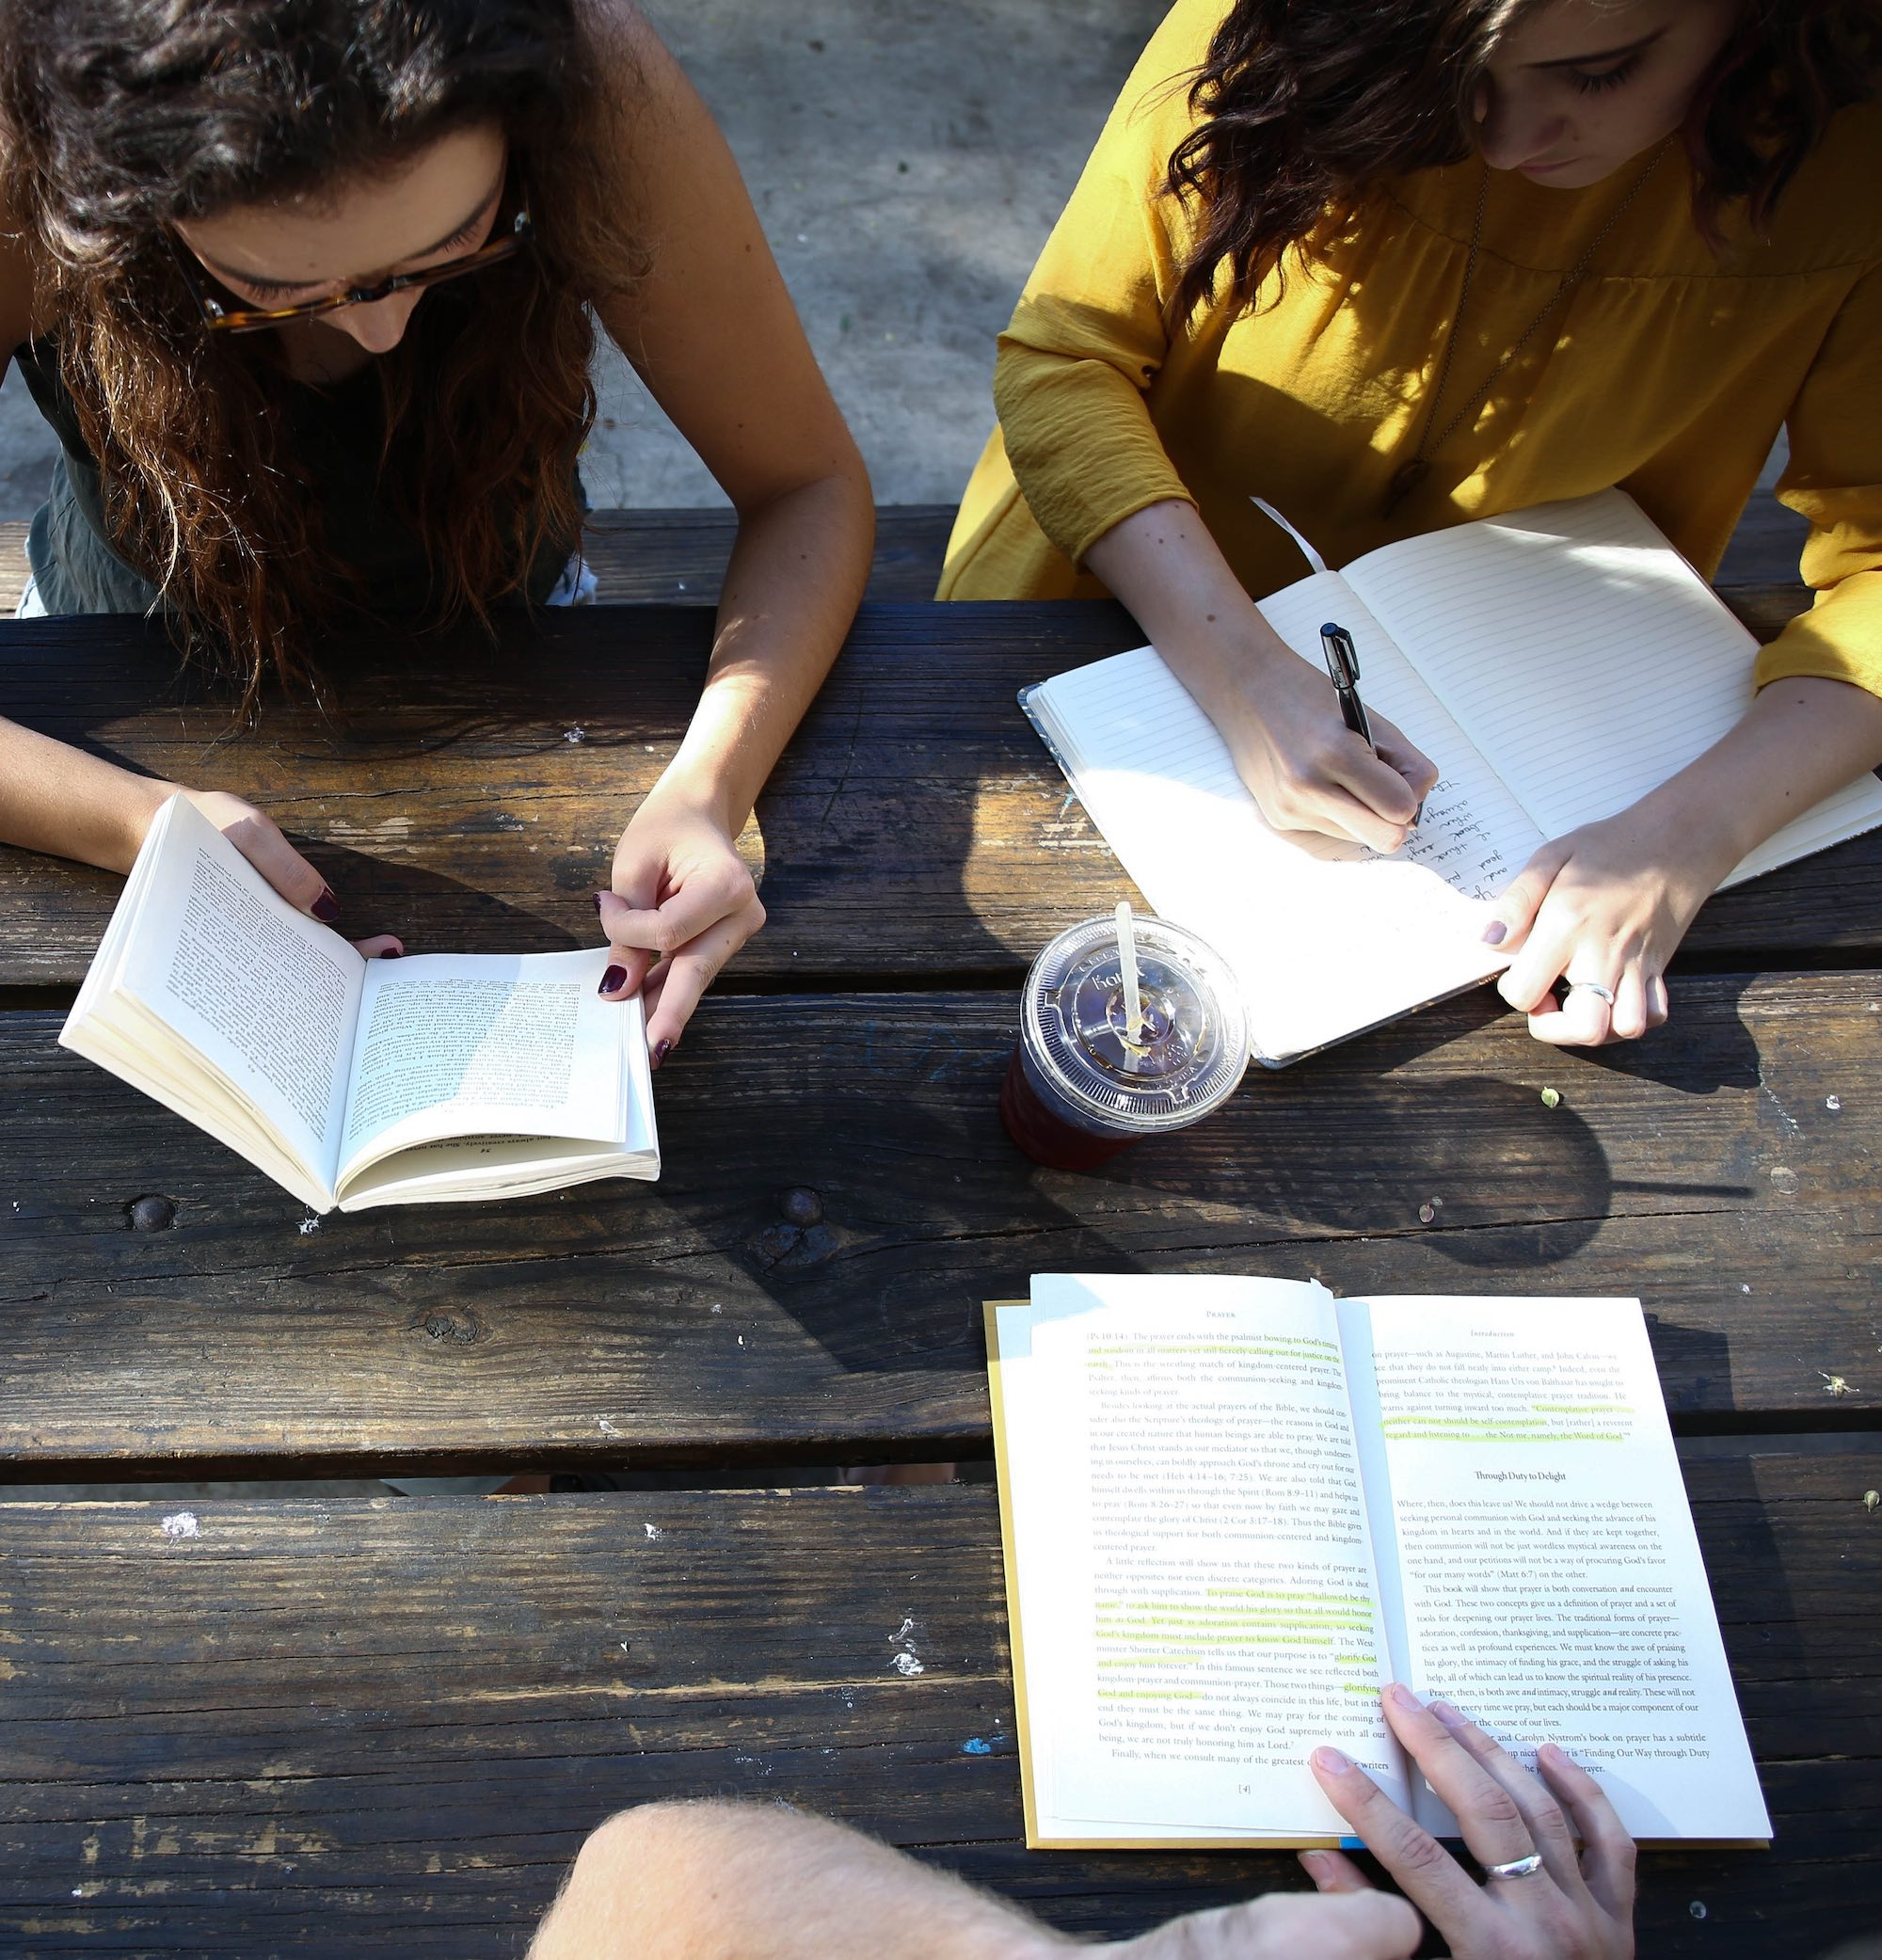 three people reading open books at a table